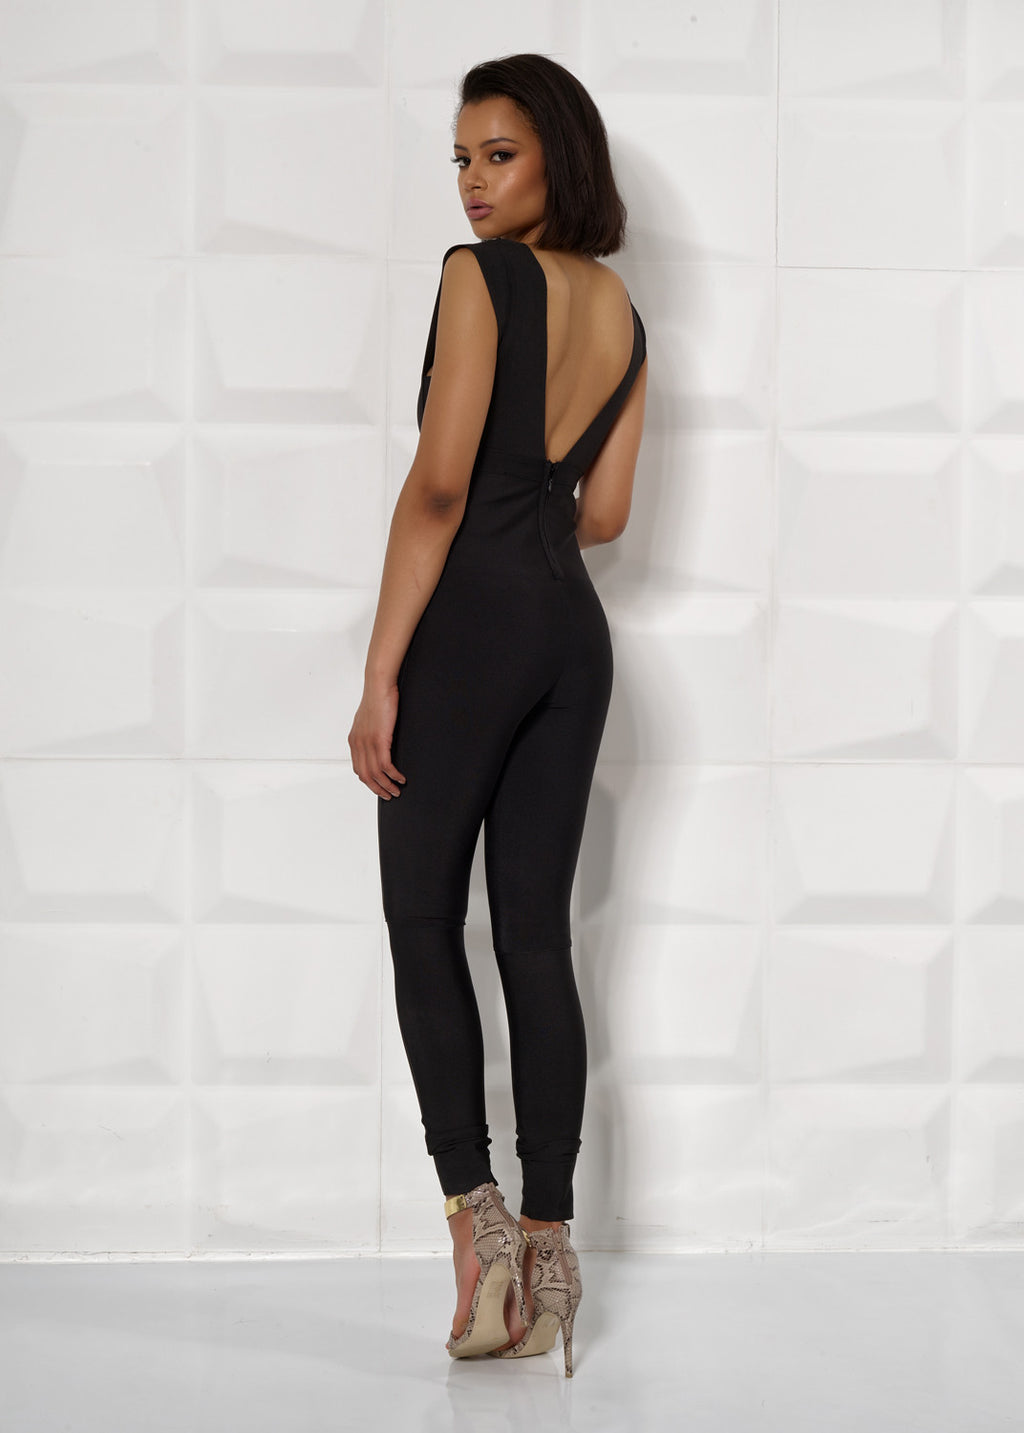 'LOUISA' BANDAGE, LOW V, JUMPSUIT